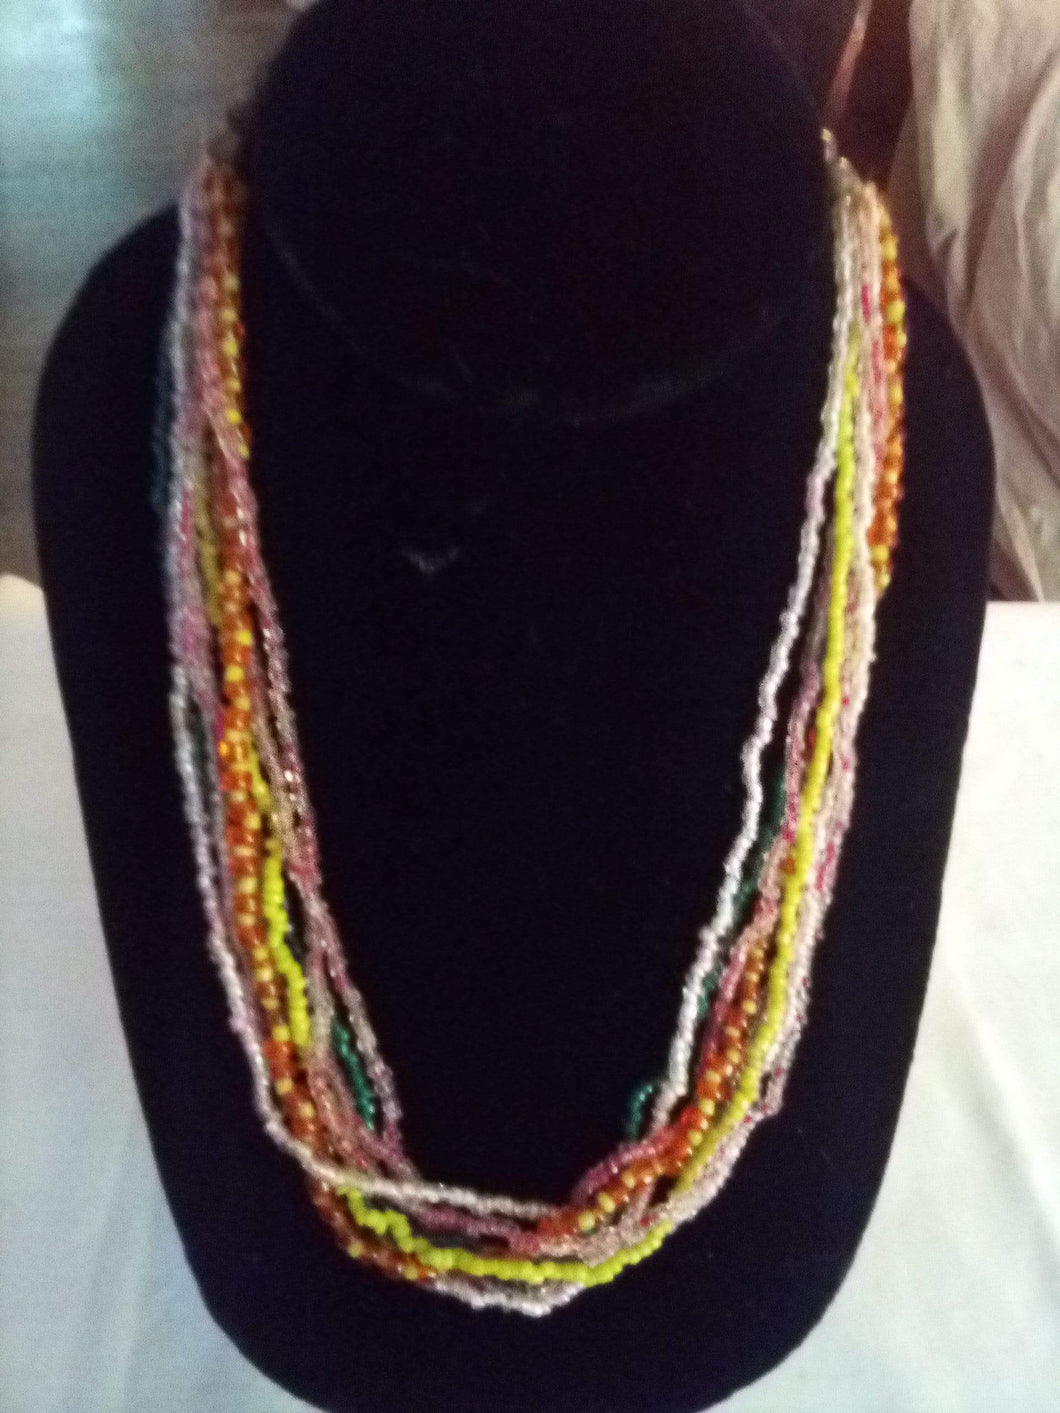 Multi color small beaded necklace - B&P'sringsnthings